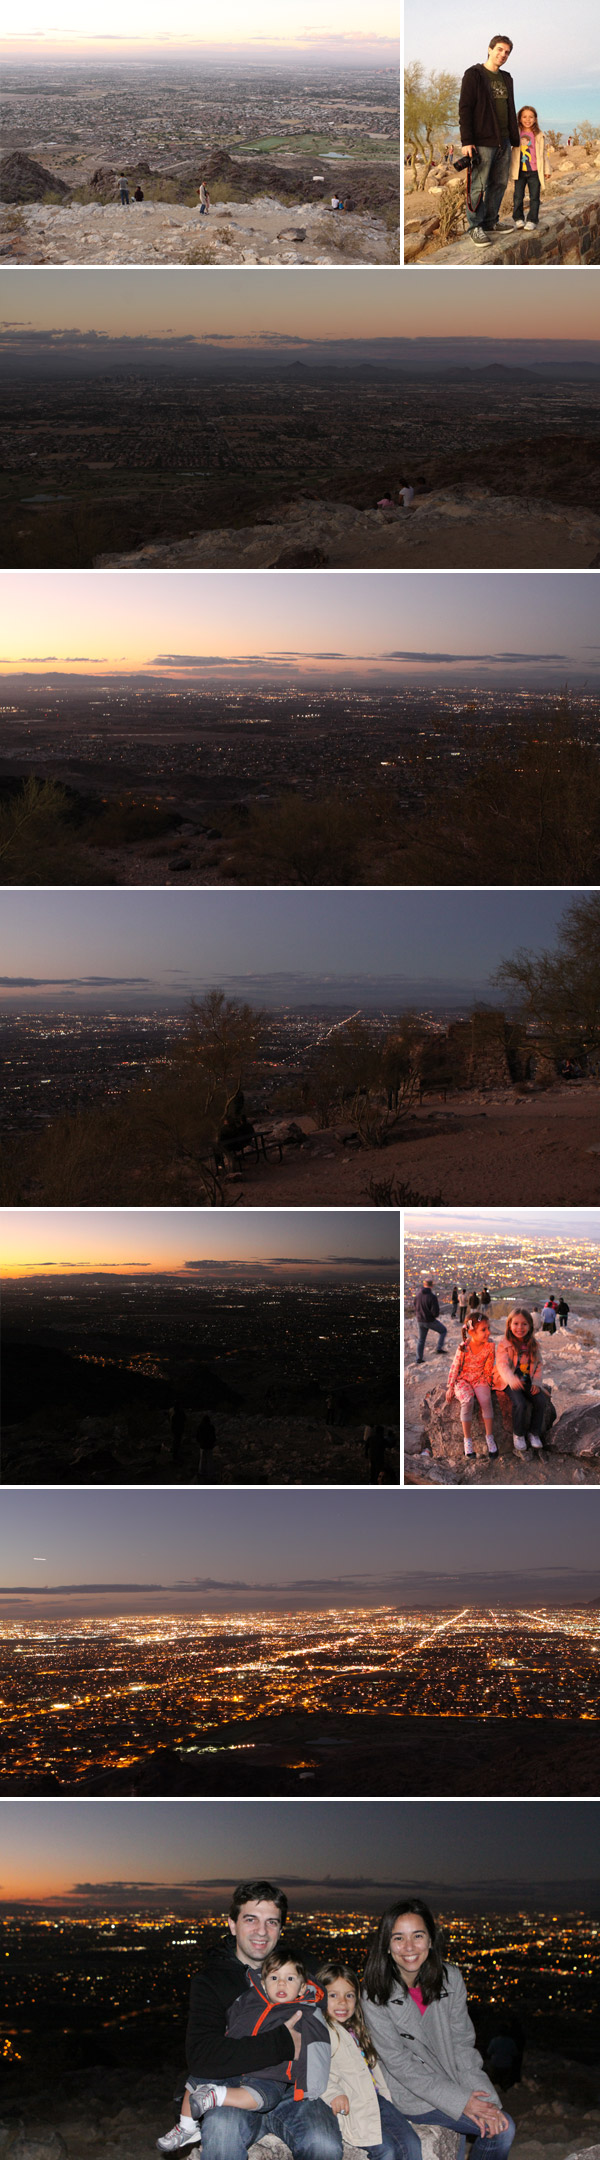 vista de phoenix south mountain